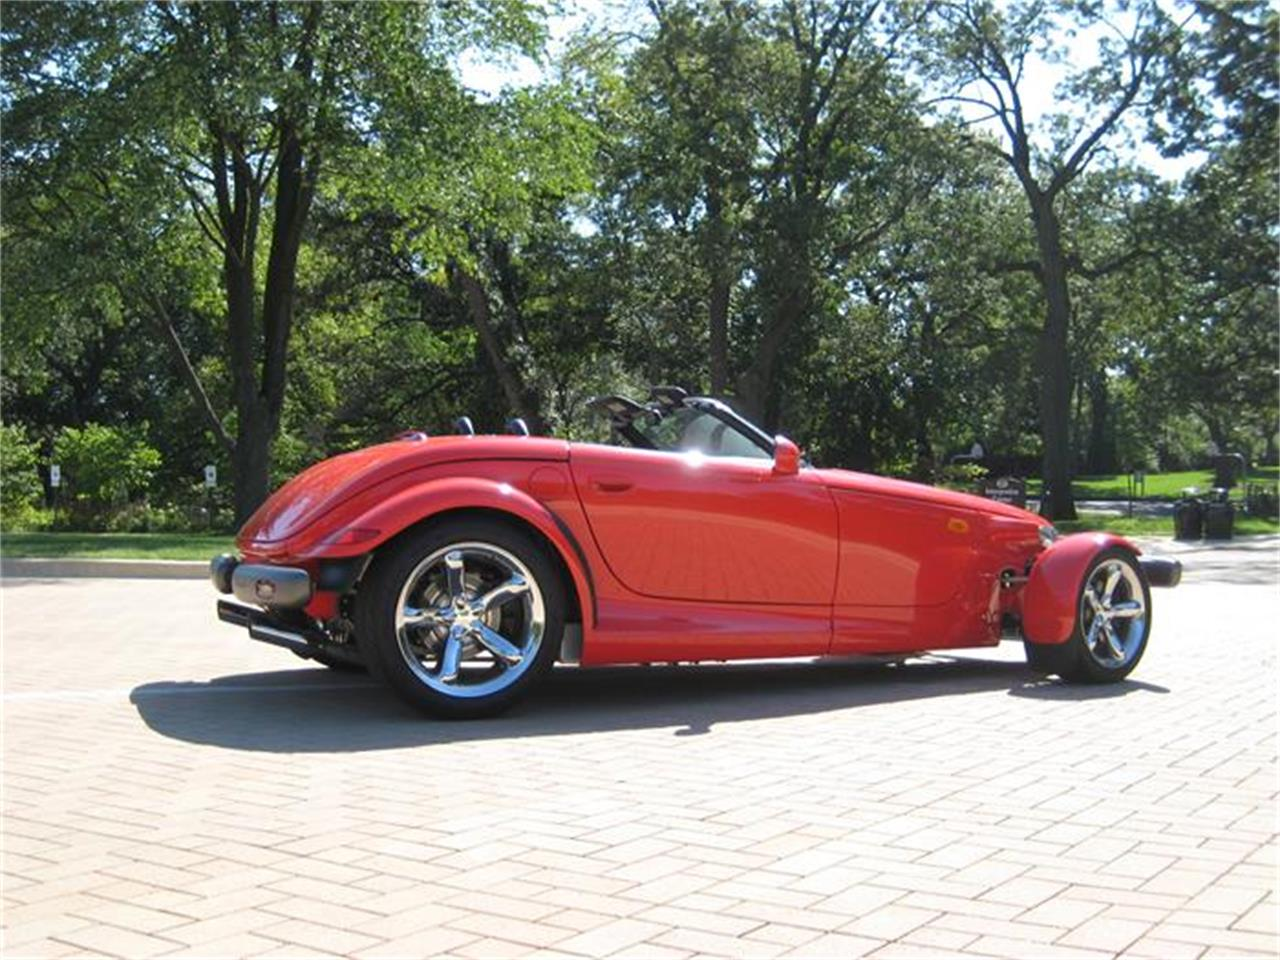 Large Picture of '99 Plymouth Prowler located in Illinois - $39,995.00 - FF2G